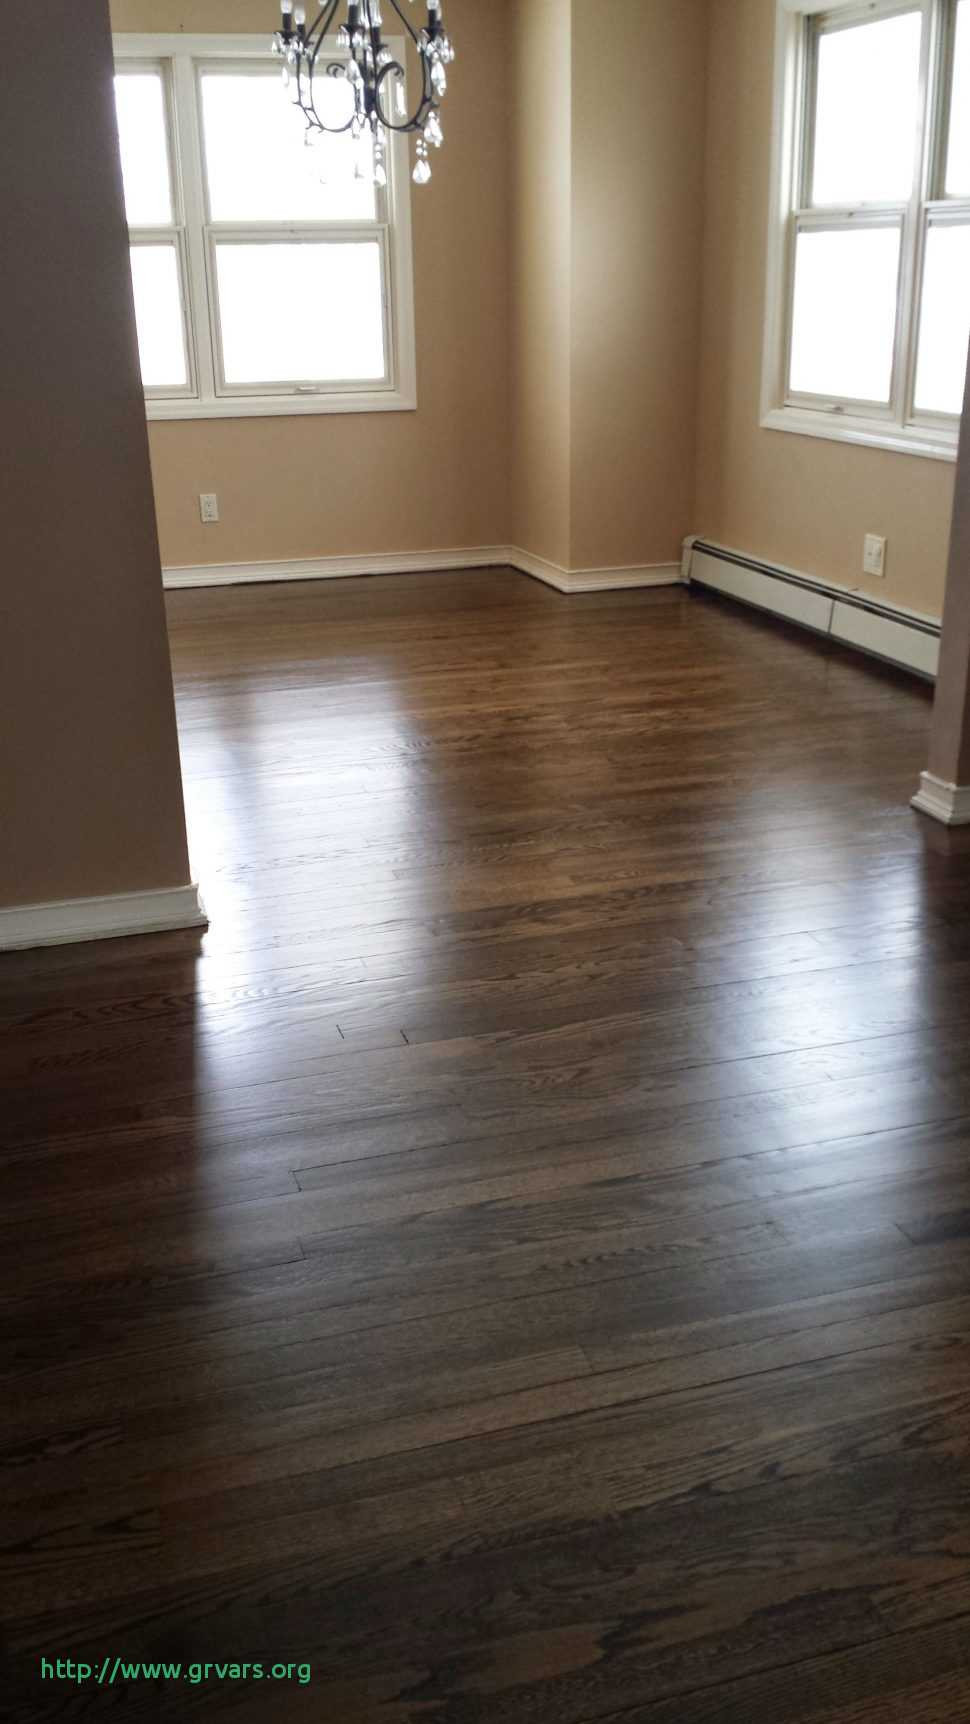 how much does it cost to do hardwood floors of how much does it cost to have hardwood floors refinished frais with how much does it cost to have hardwood floors refinished frais amusing refinishingod floors diy network refinish parquet without